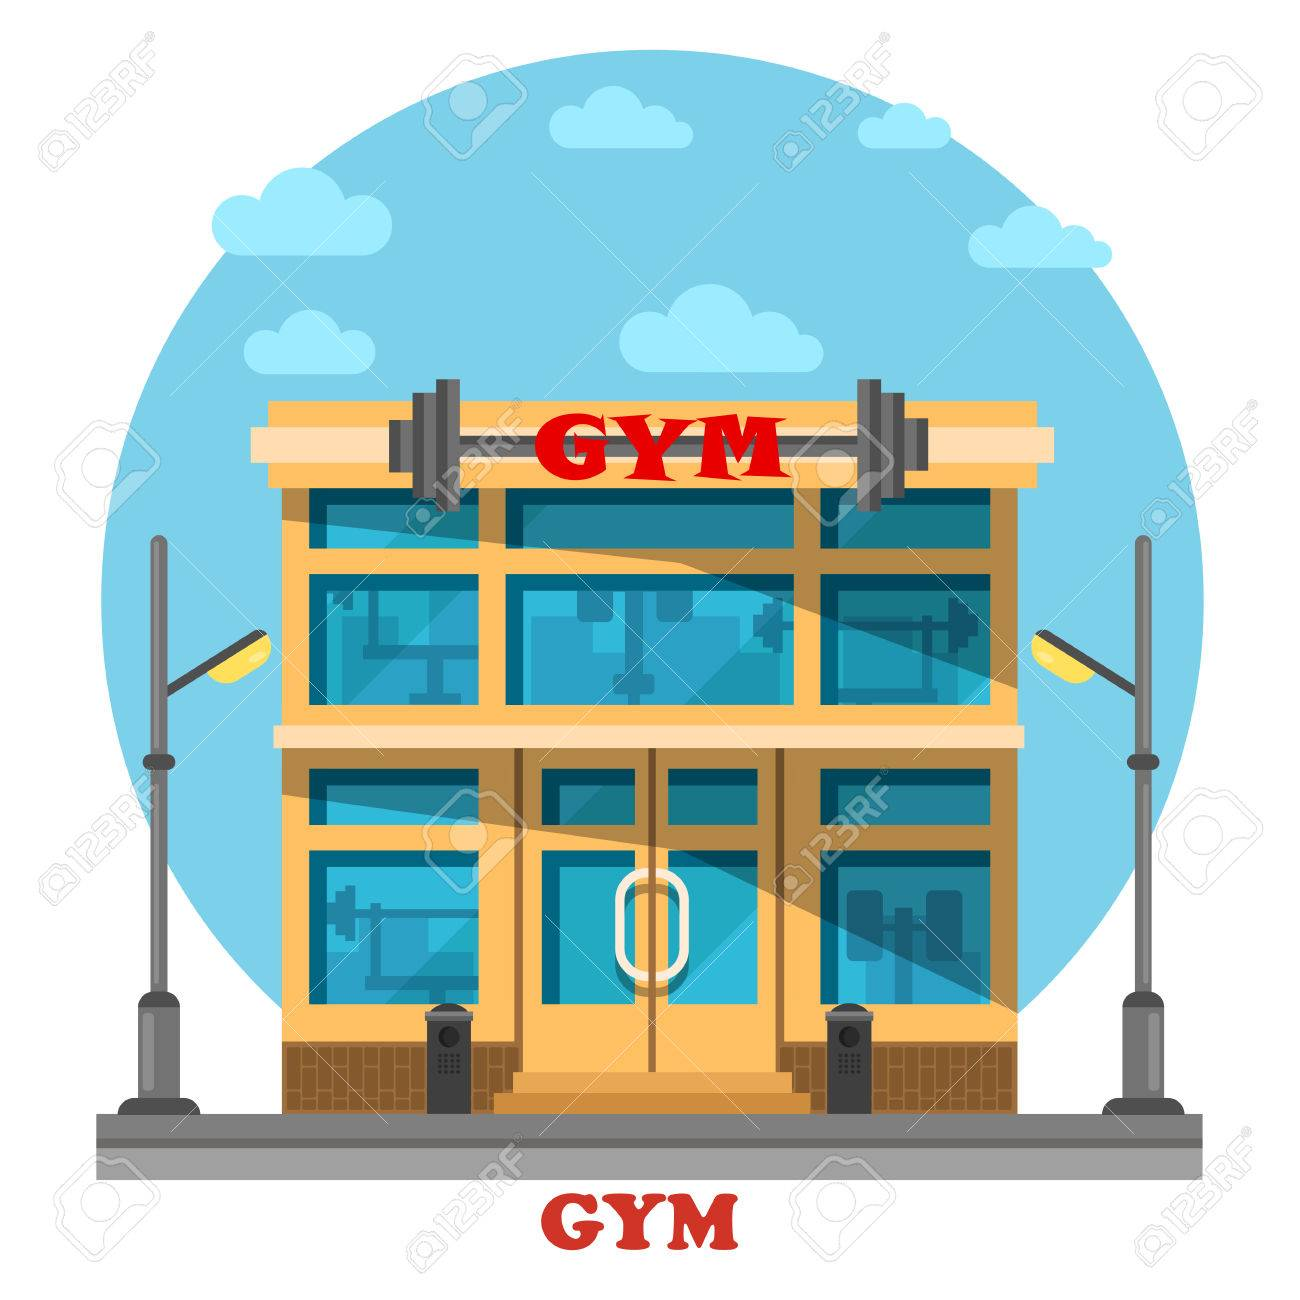 3075 Gym free clipart.